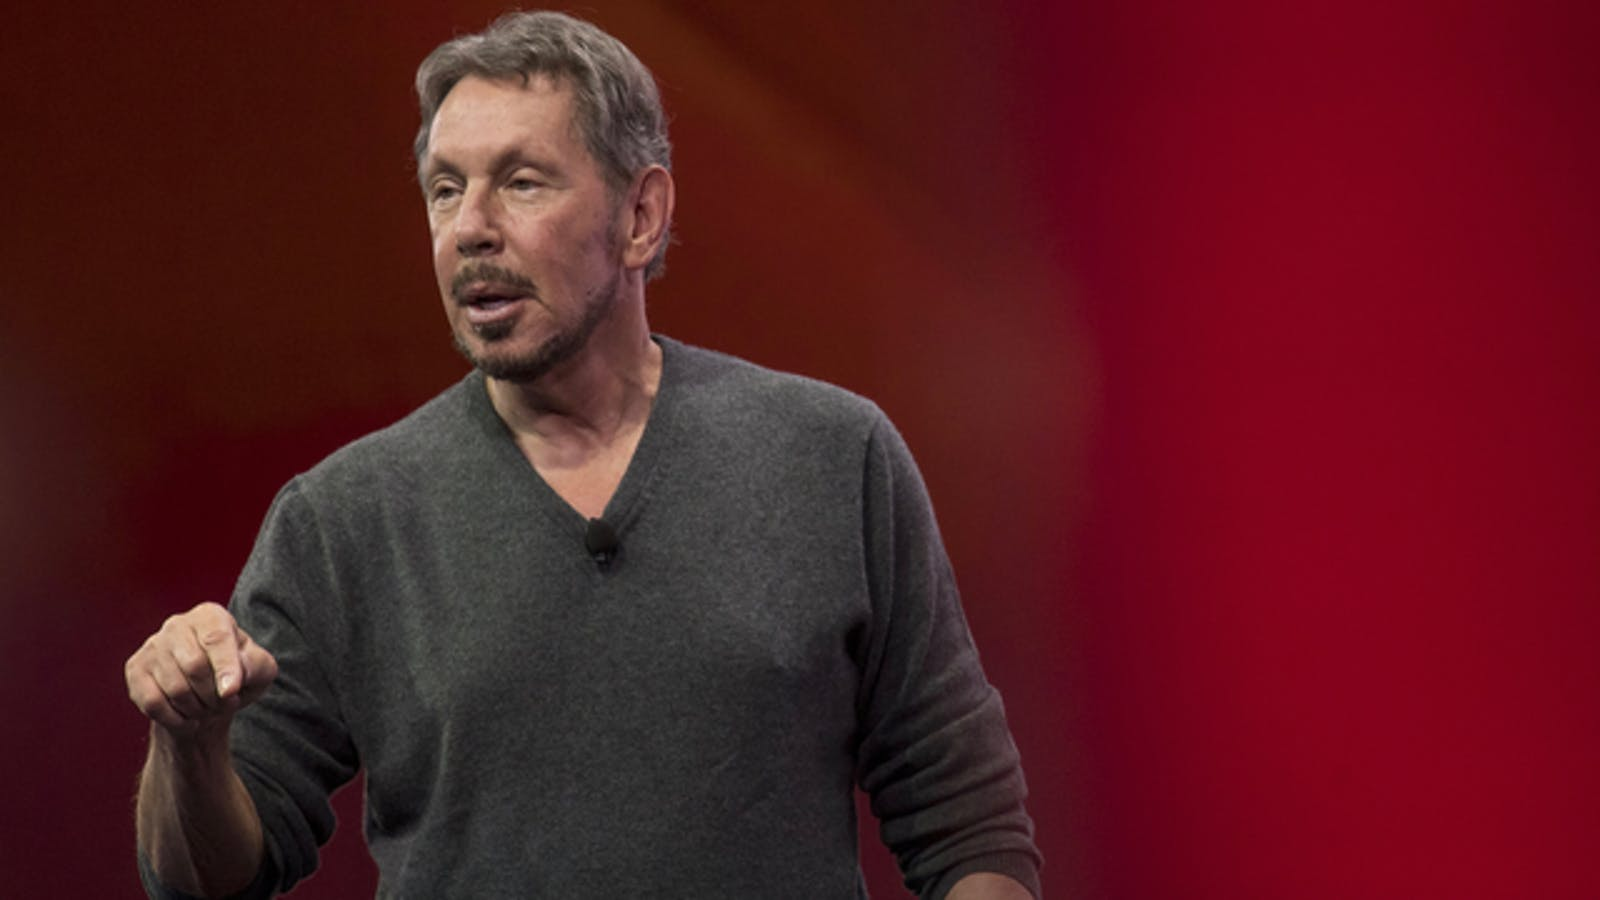 Oracle Chairman Larry Ellison. Photo by Bloomberg.